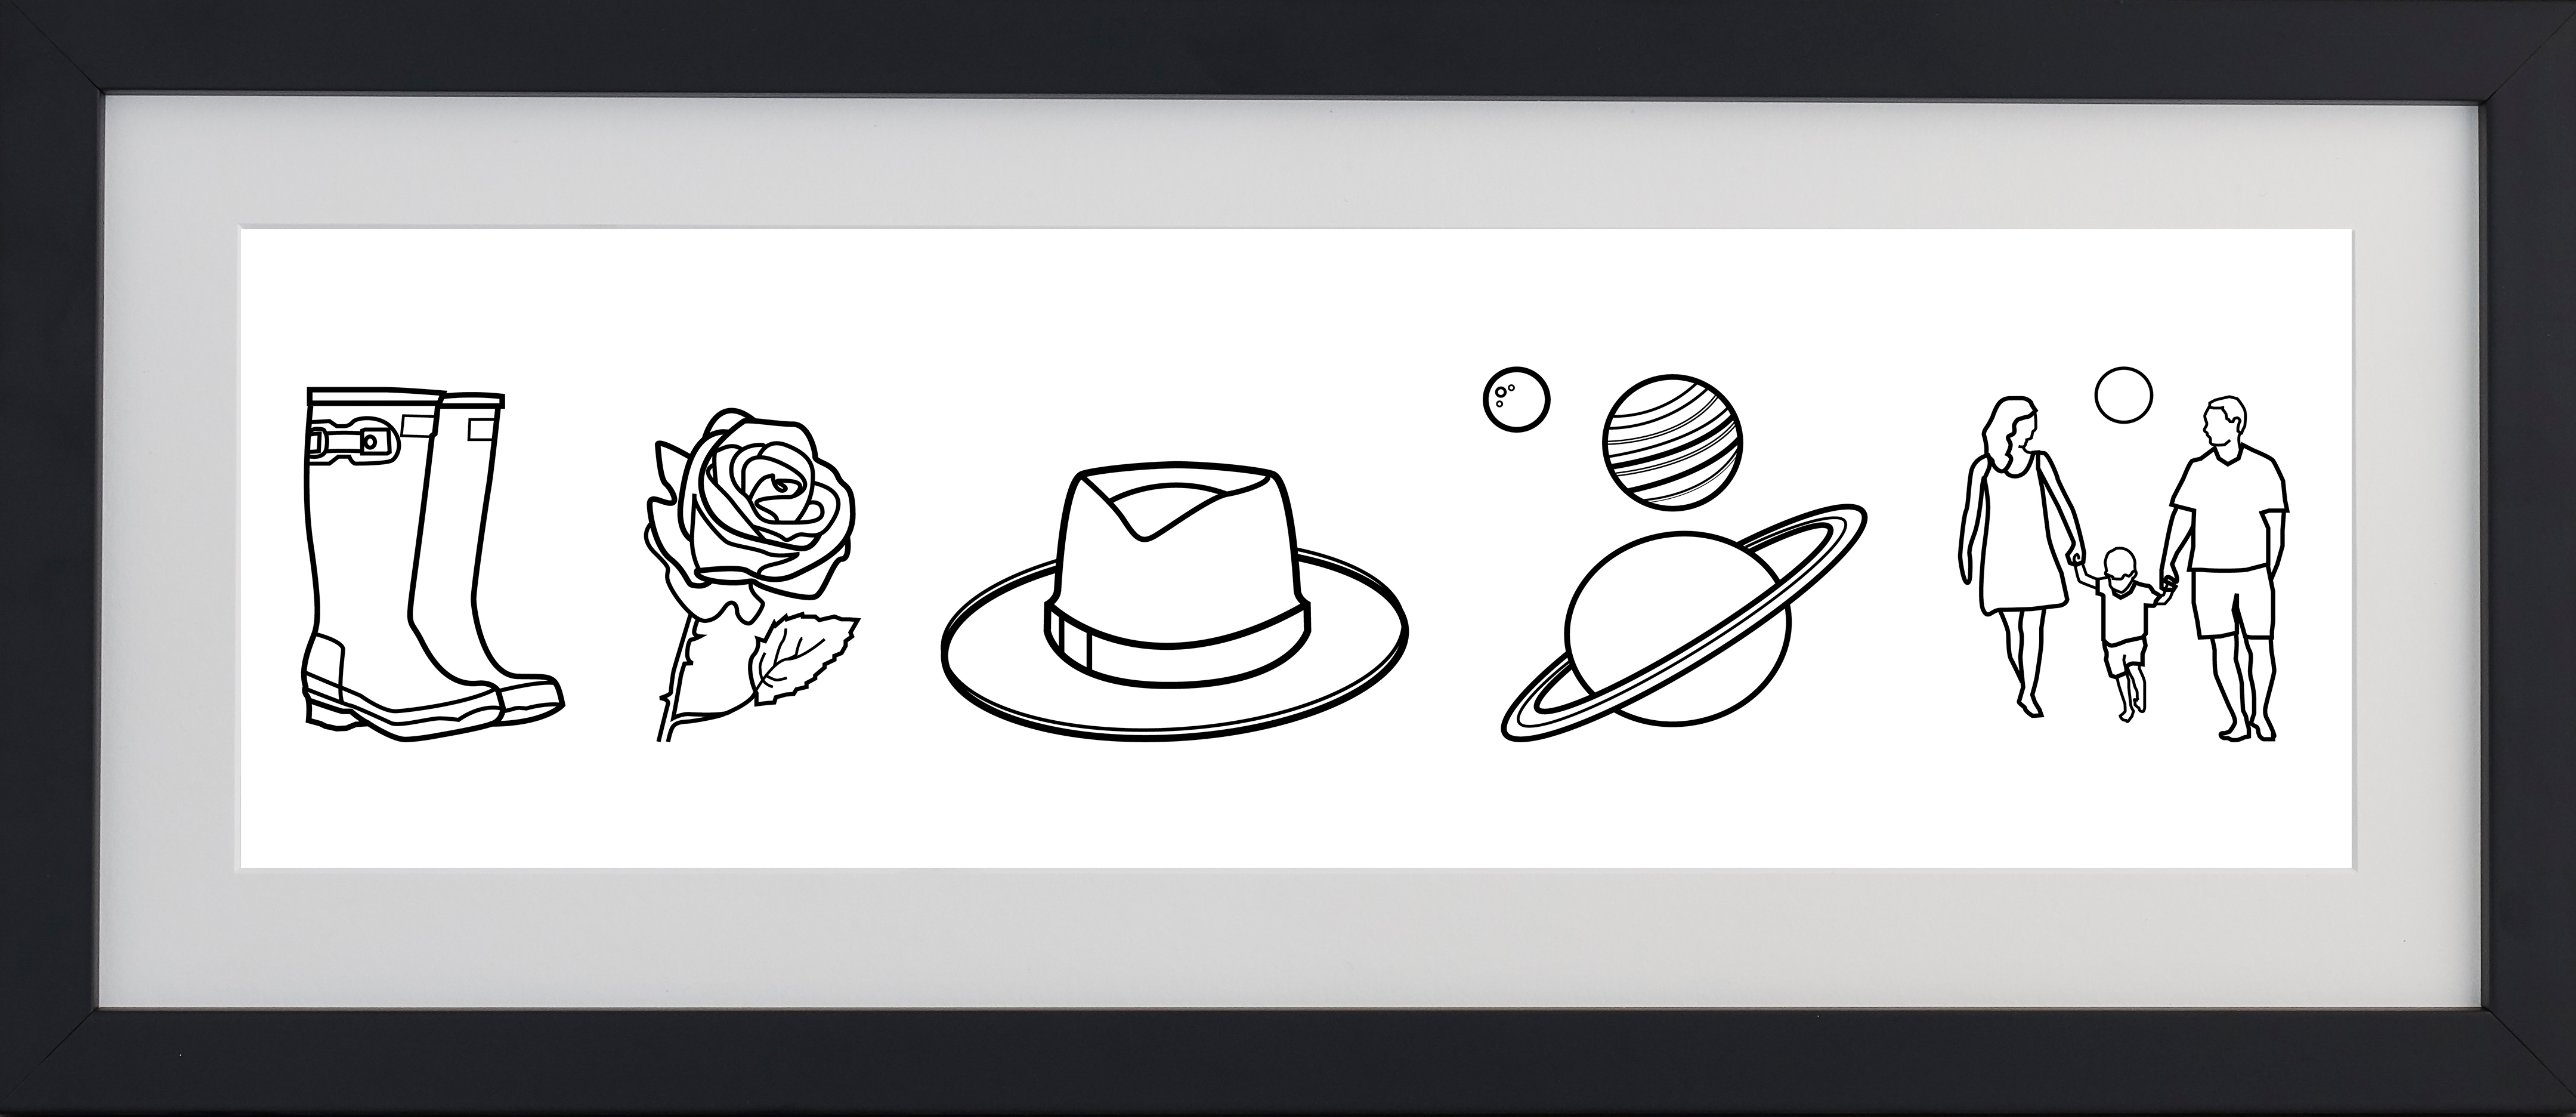 Monochrome framed print with icons